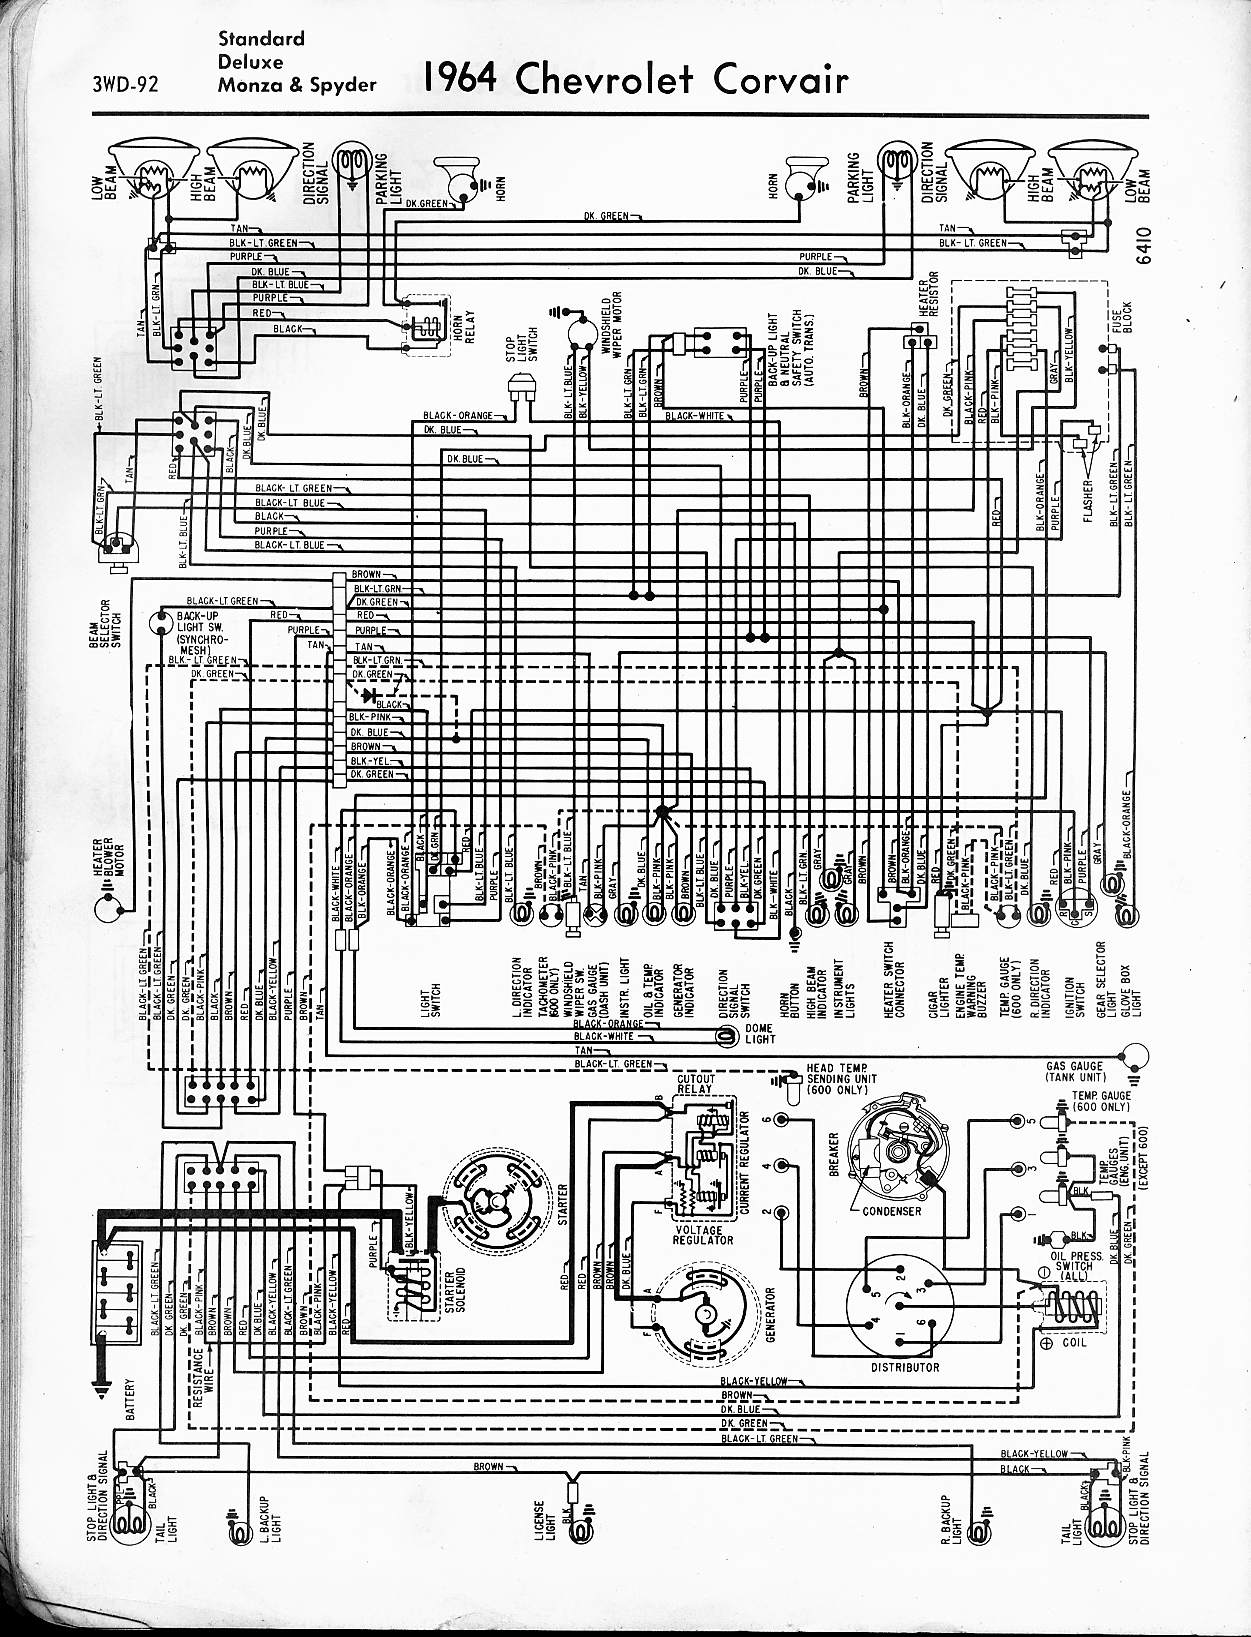 MWireChev64_3WD 092 57 65 chevy wiring diagrams chevrolet 1966 impala wiring diagram at crackthecode.co